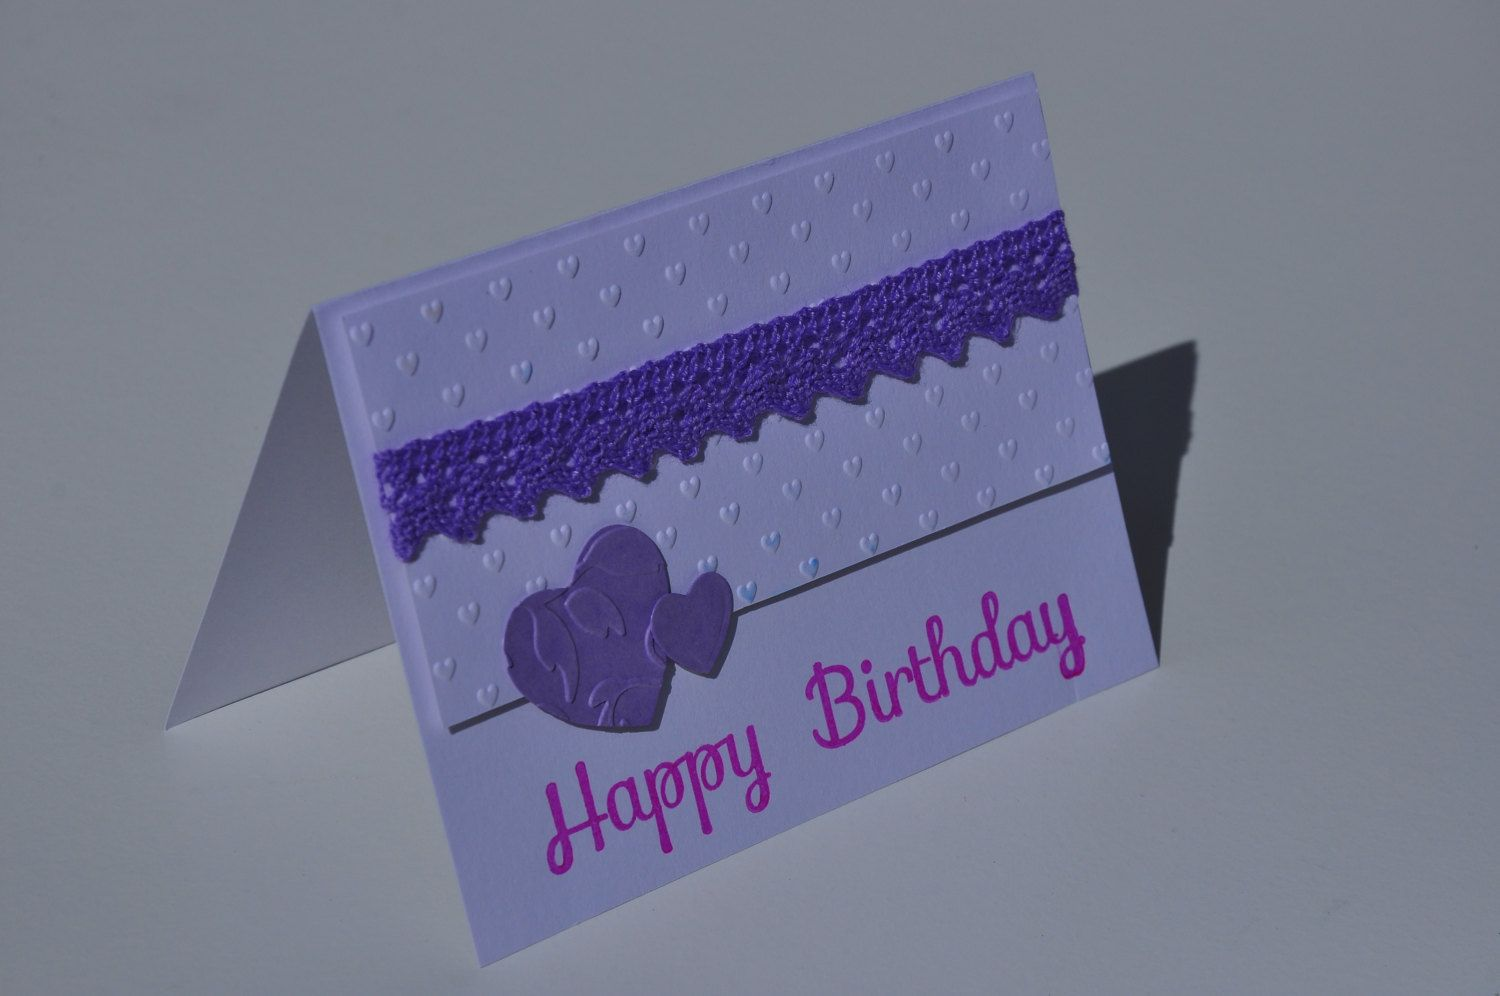 Happy Birthday hearts card by KraftAndSetApart on Etsy